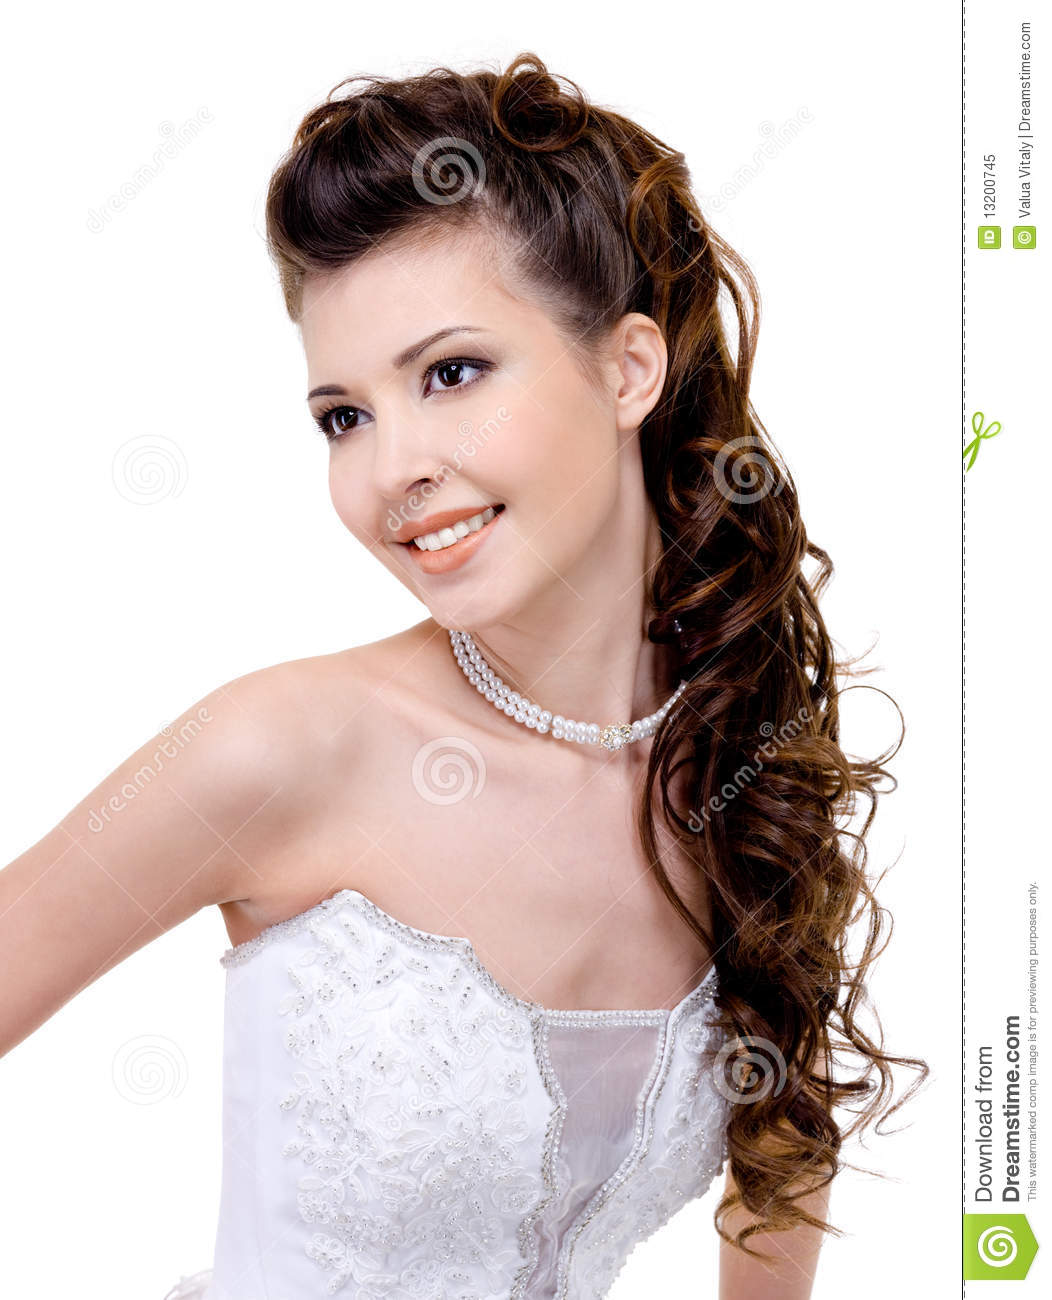 Smiling Bride With Curly Wedding Hairstyle Stock Image - Image of ...